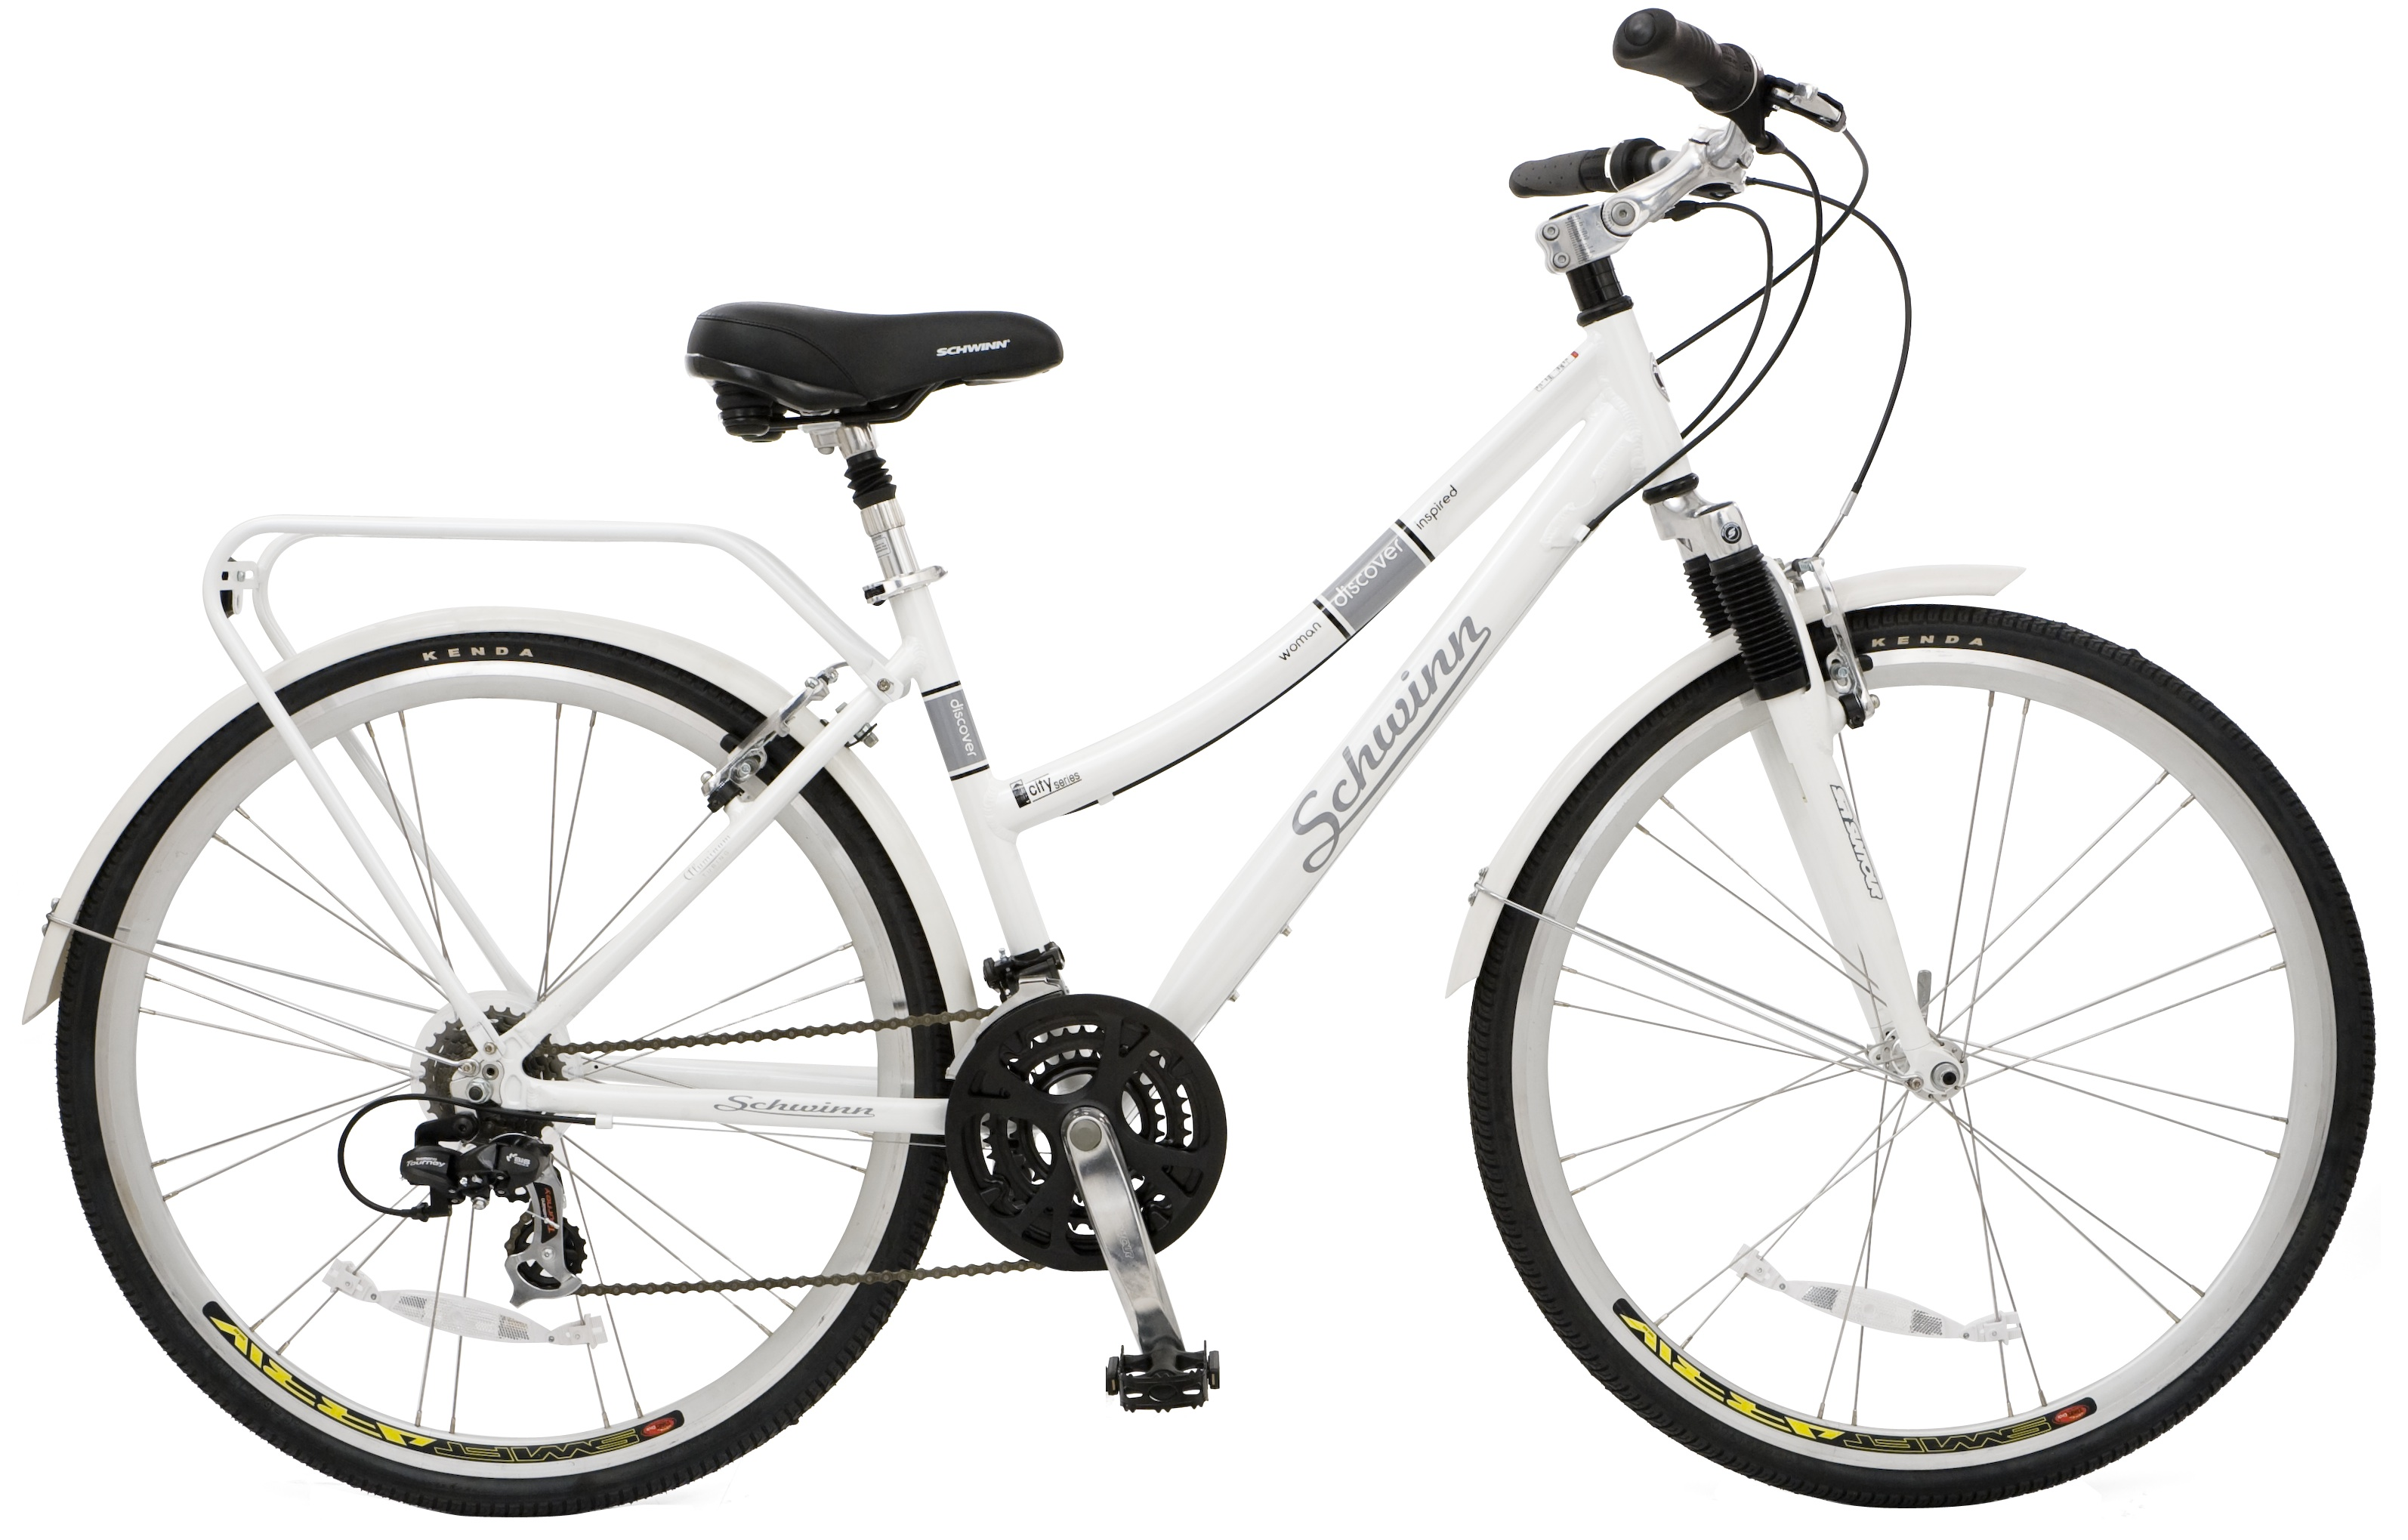 Schwinn Discover Women's Hybrid Bike (700C Wheels) - Reviews of Top 10 Winter and Snow Boots for Women and Men